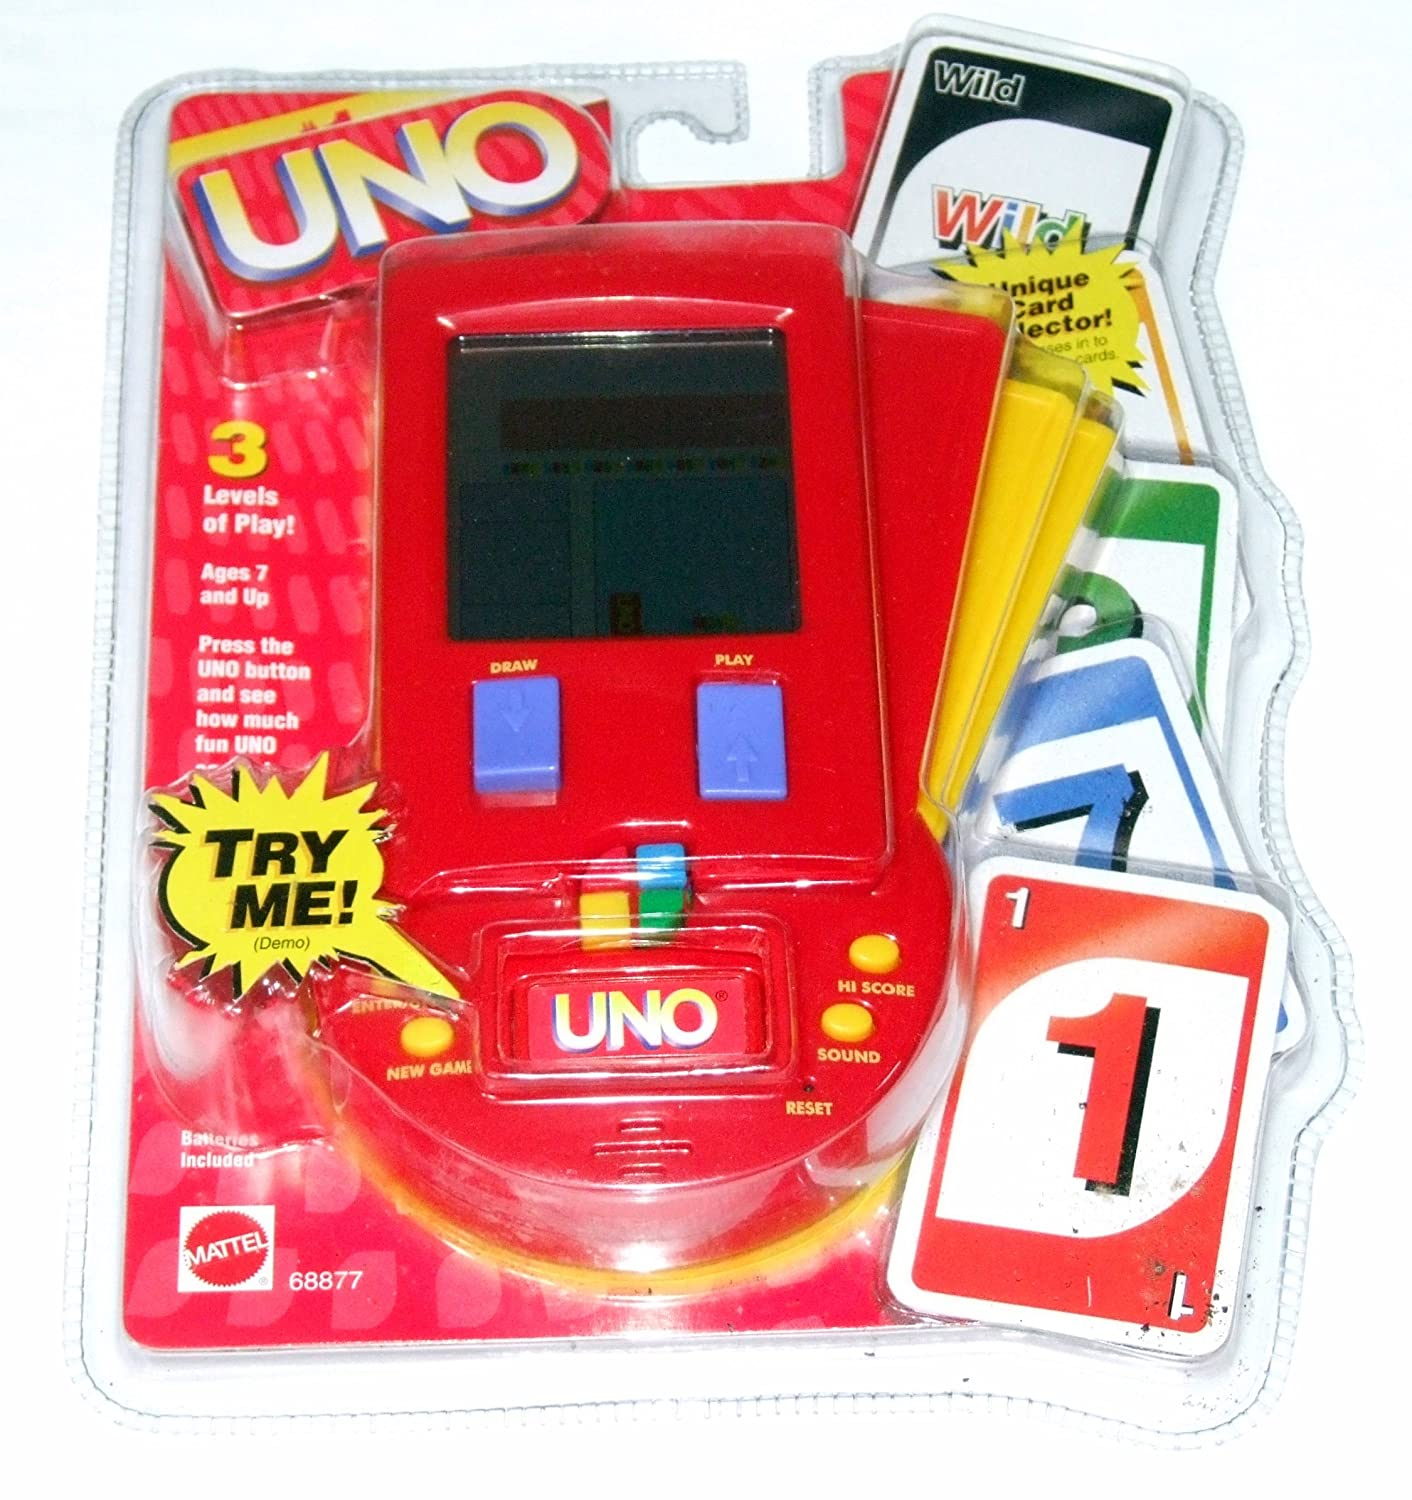 1999 Mattel, Inc  Uno LCD Handheld Game